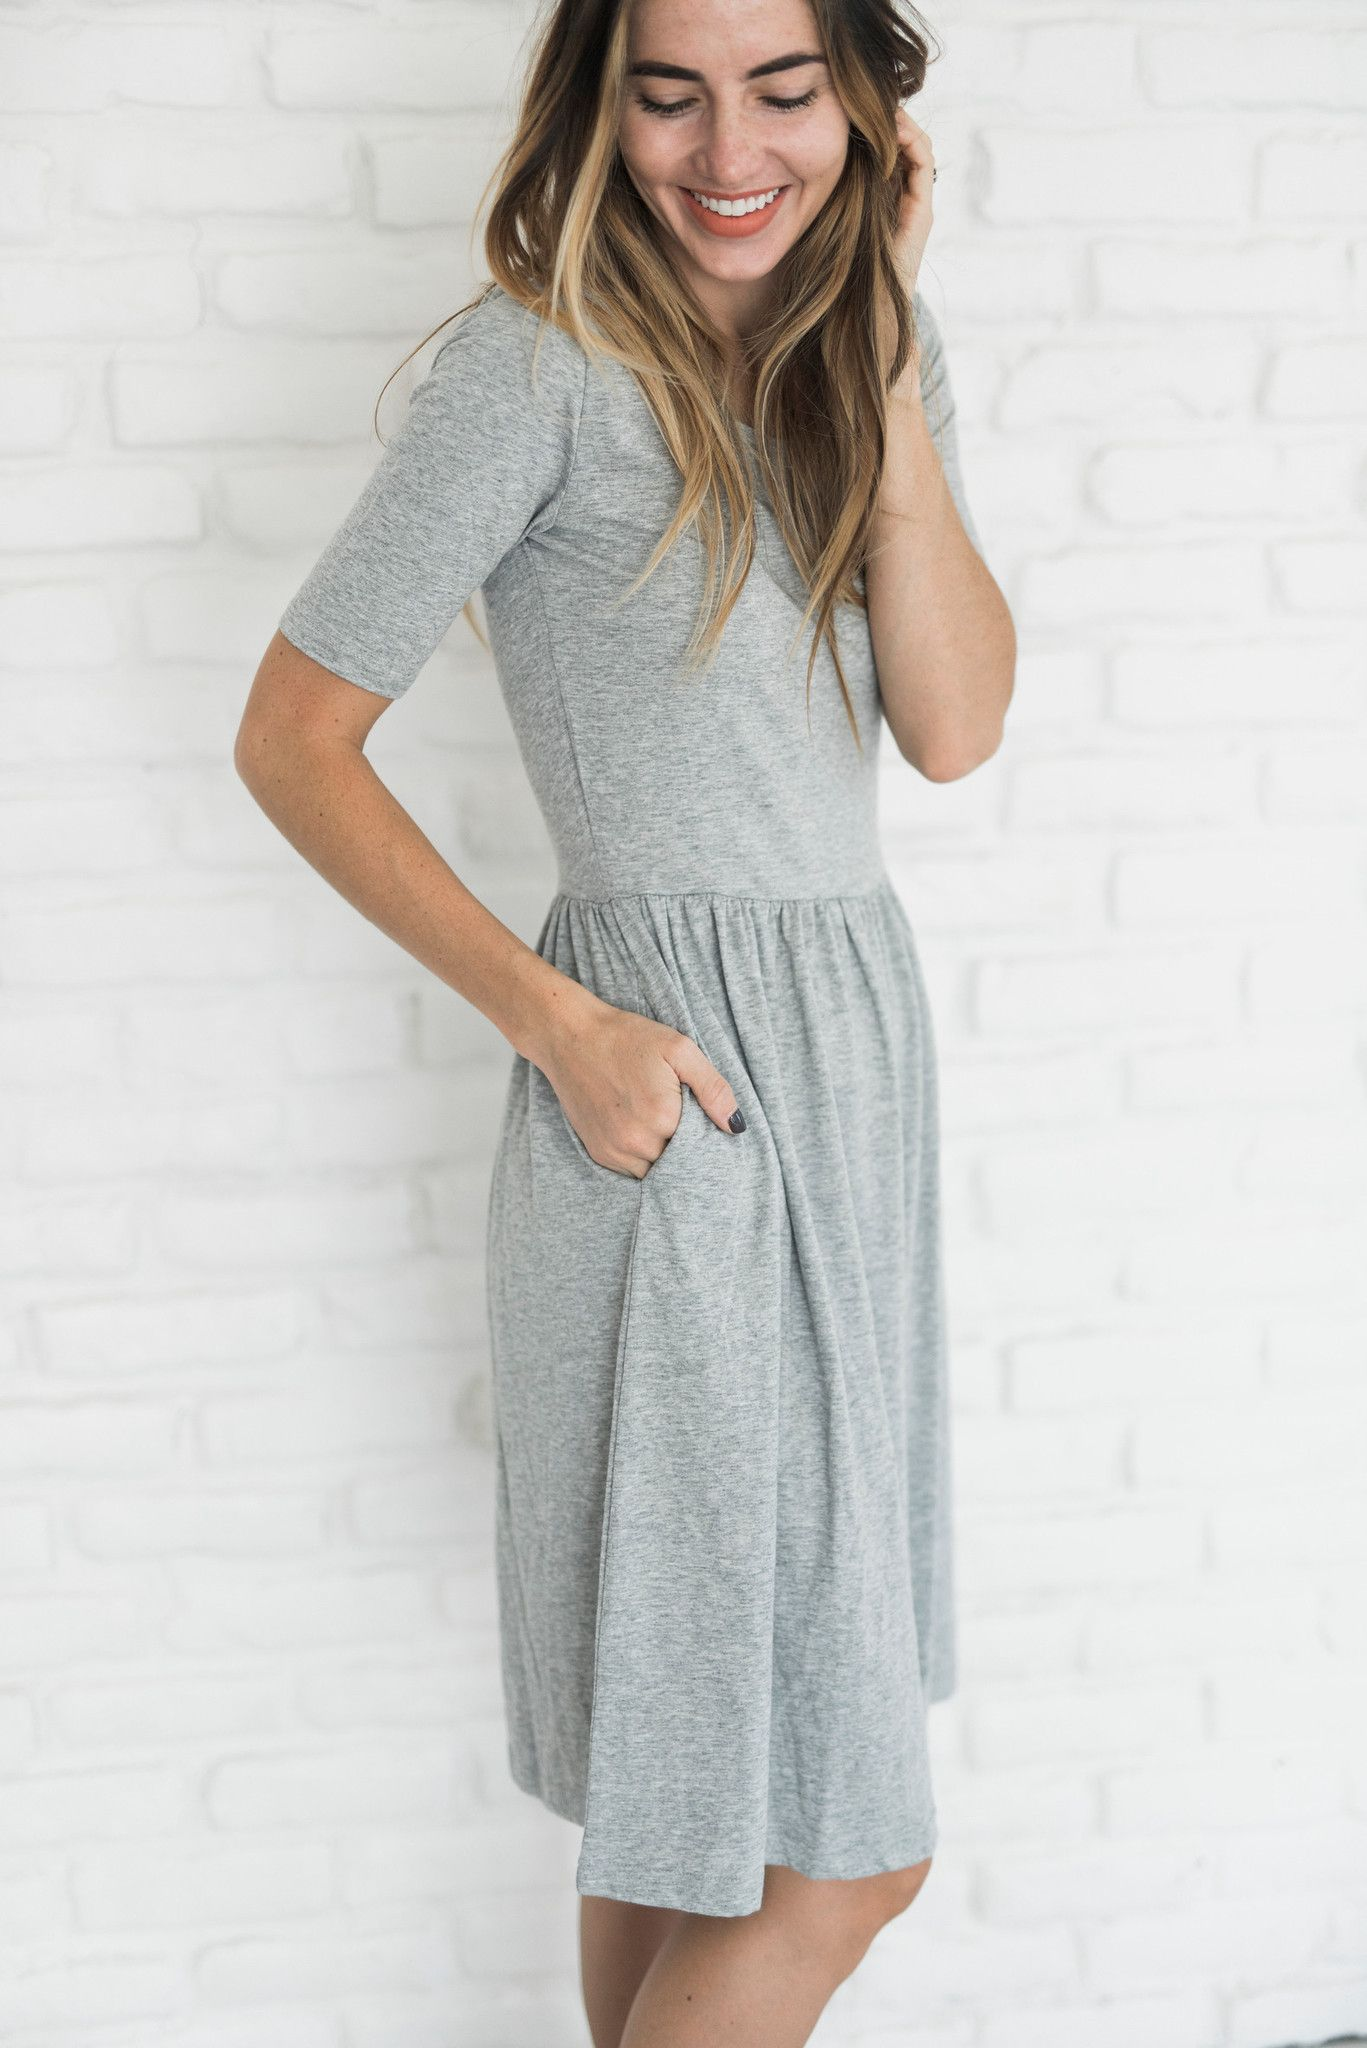 Sometimes the simplest dress makes for the best dress the pairing